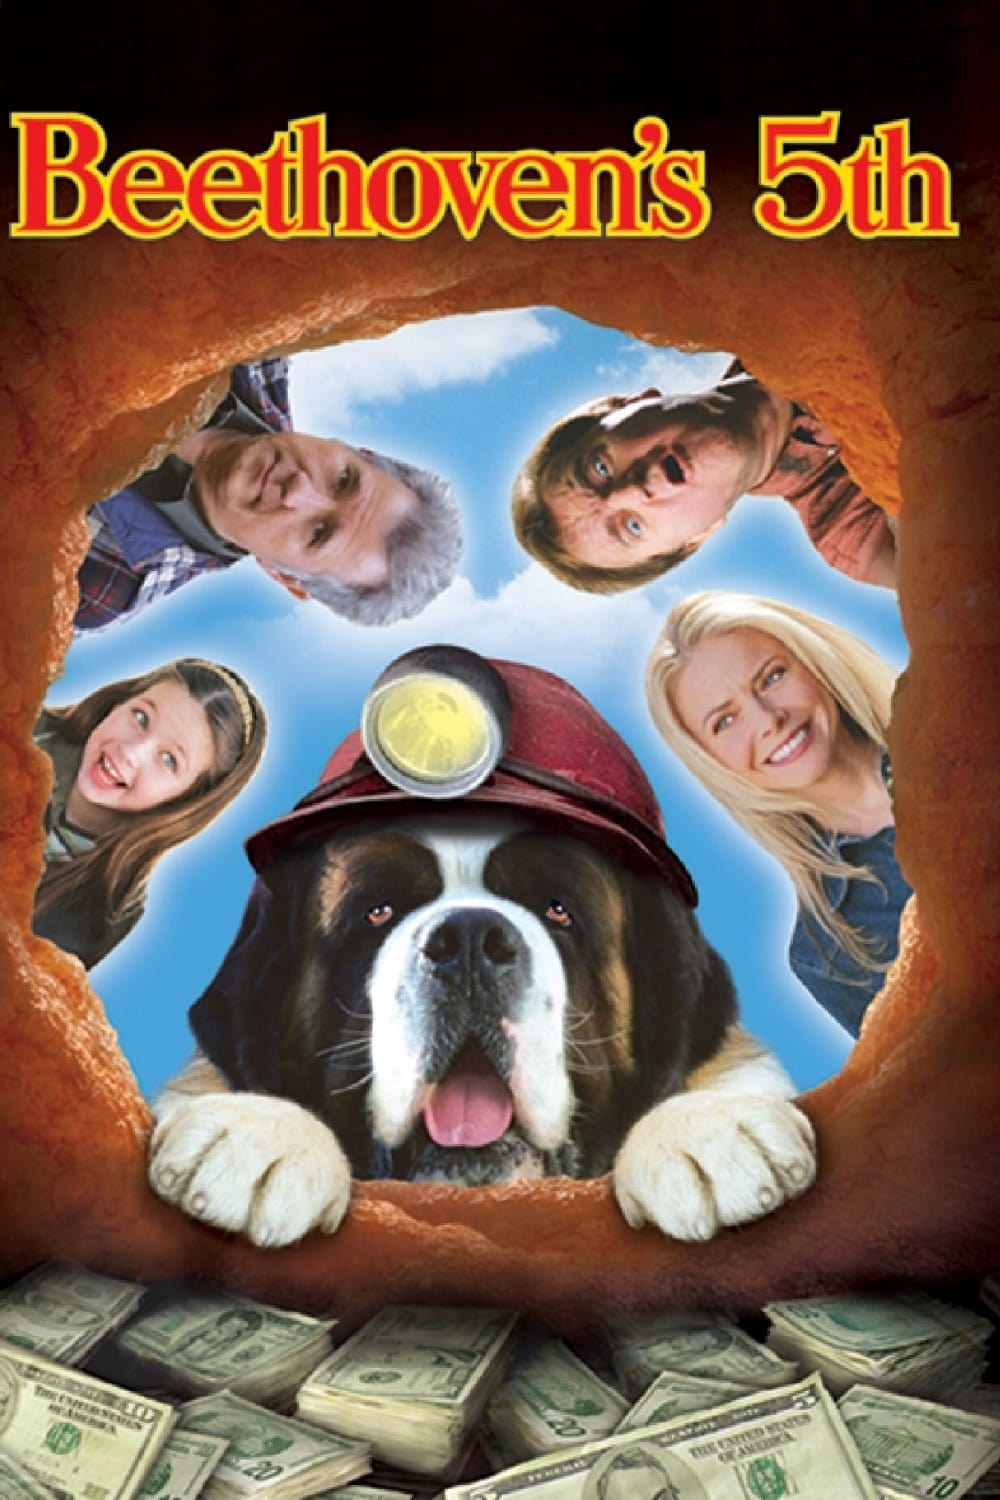 Beethoven S 5th 123movies Watch Online Full Movies Tv